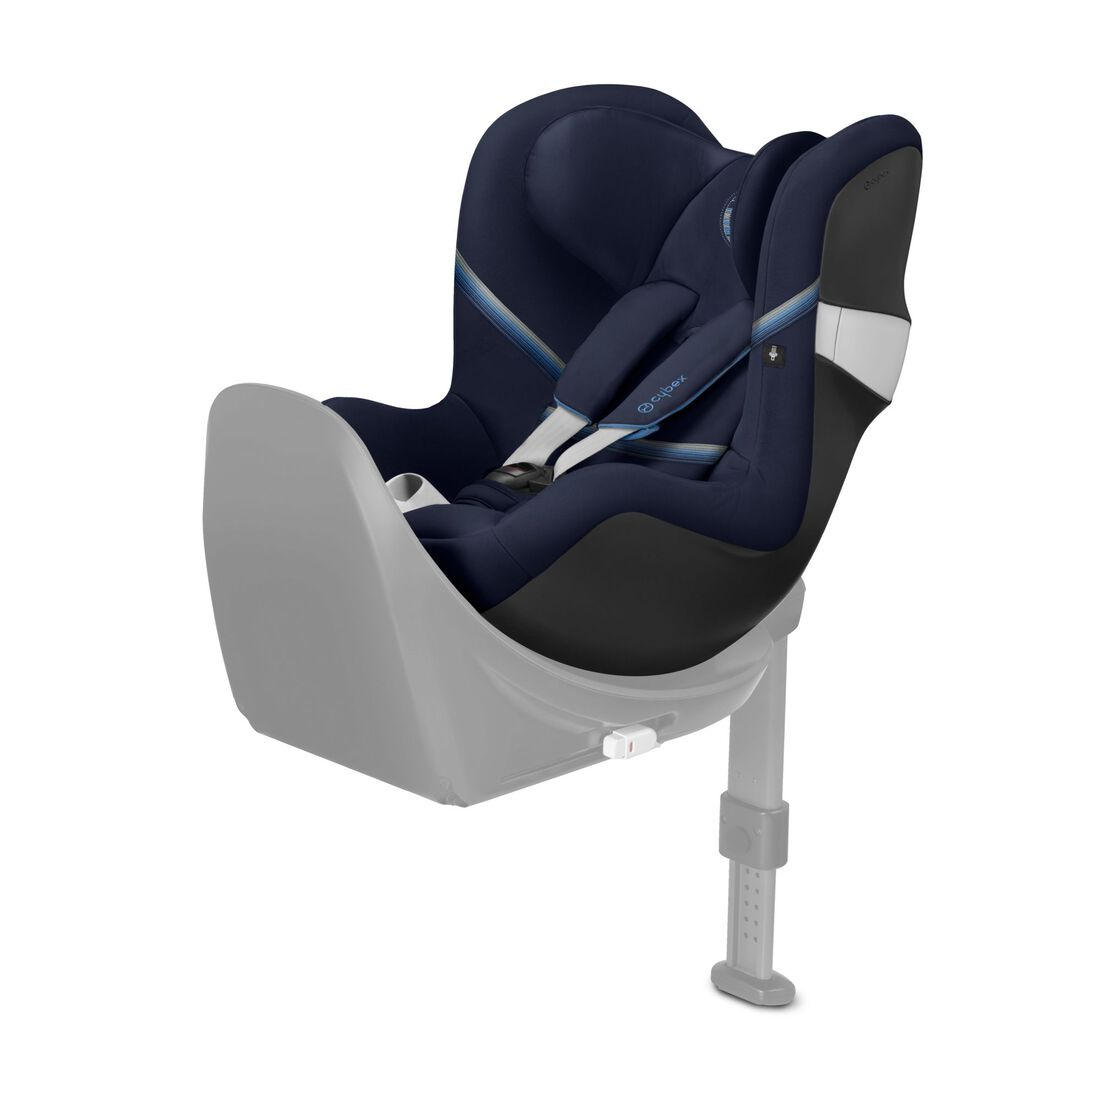 CYBEX Sirona M2 i-Size - Navy Blue in Navy Blue large image number 1